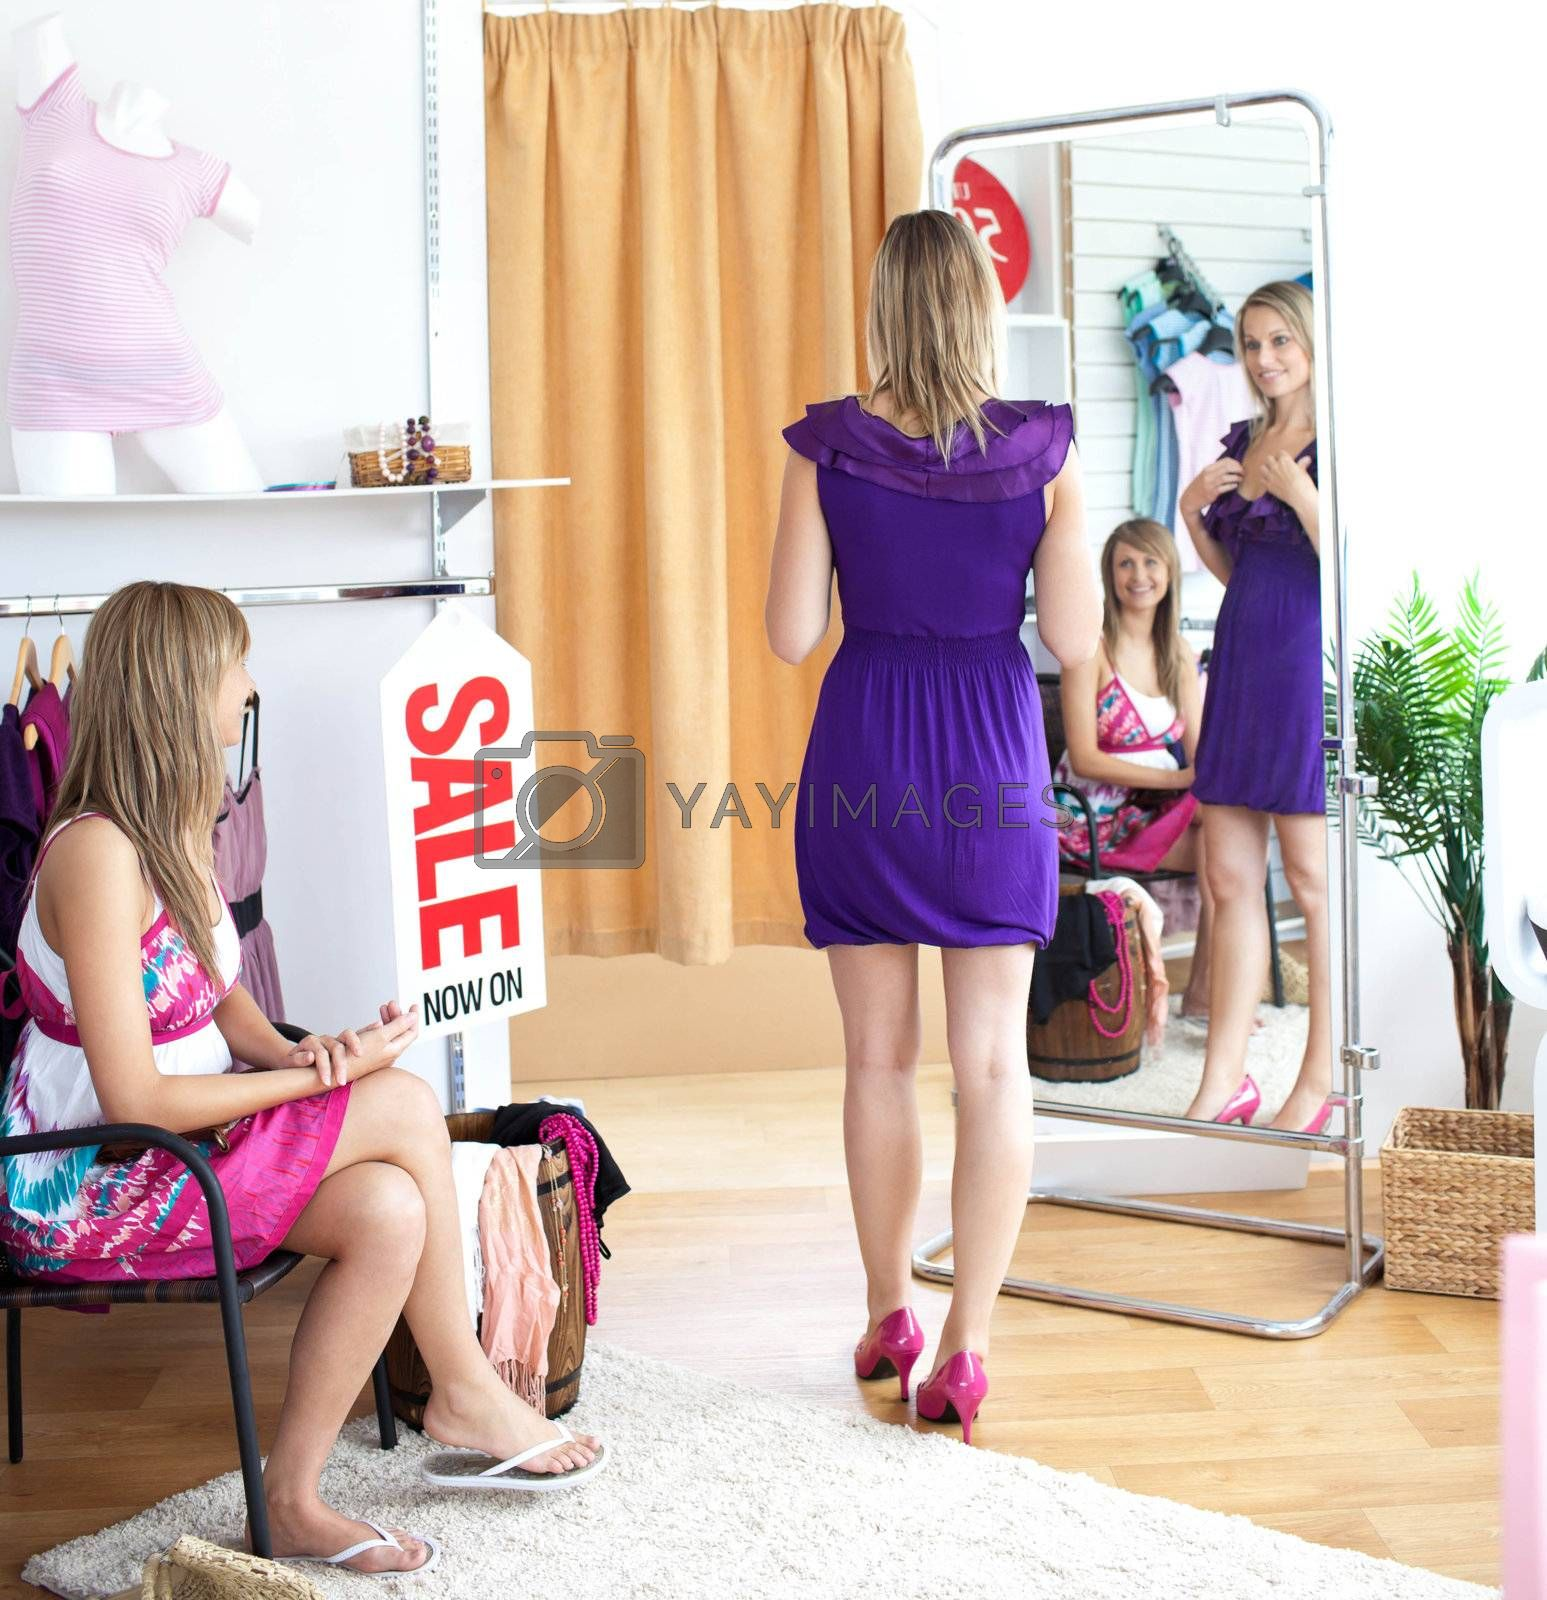 Cute women choosing clothes together in a shop